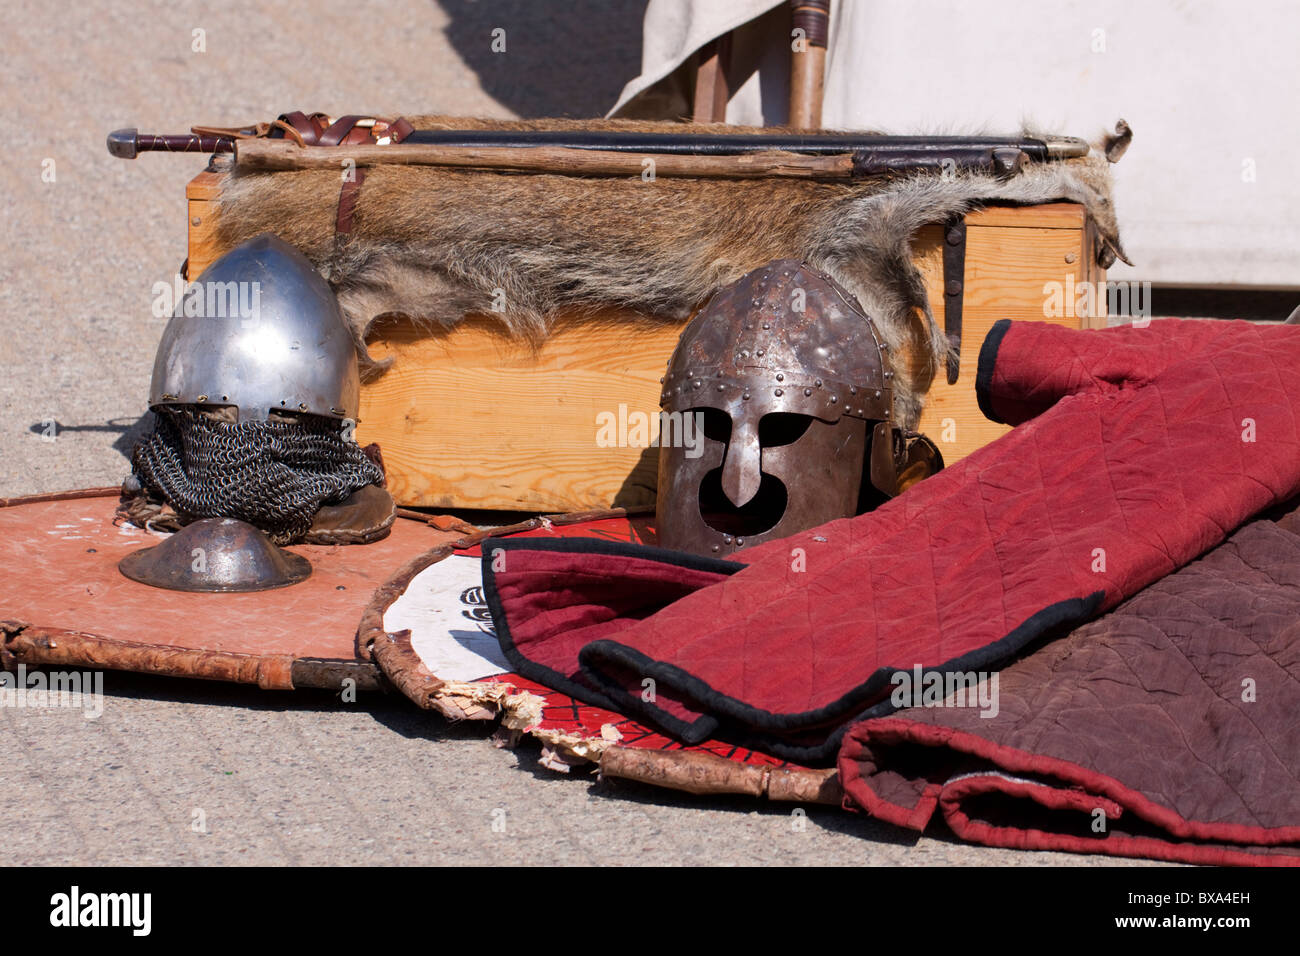 European medieval Slavic swords, helmets, shields and gambeson on display - Stock Image